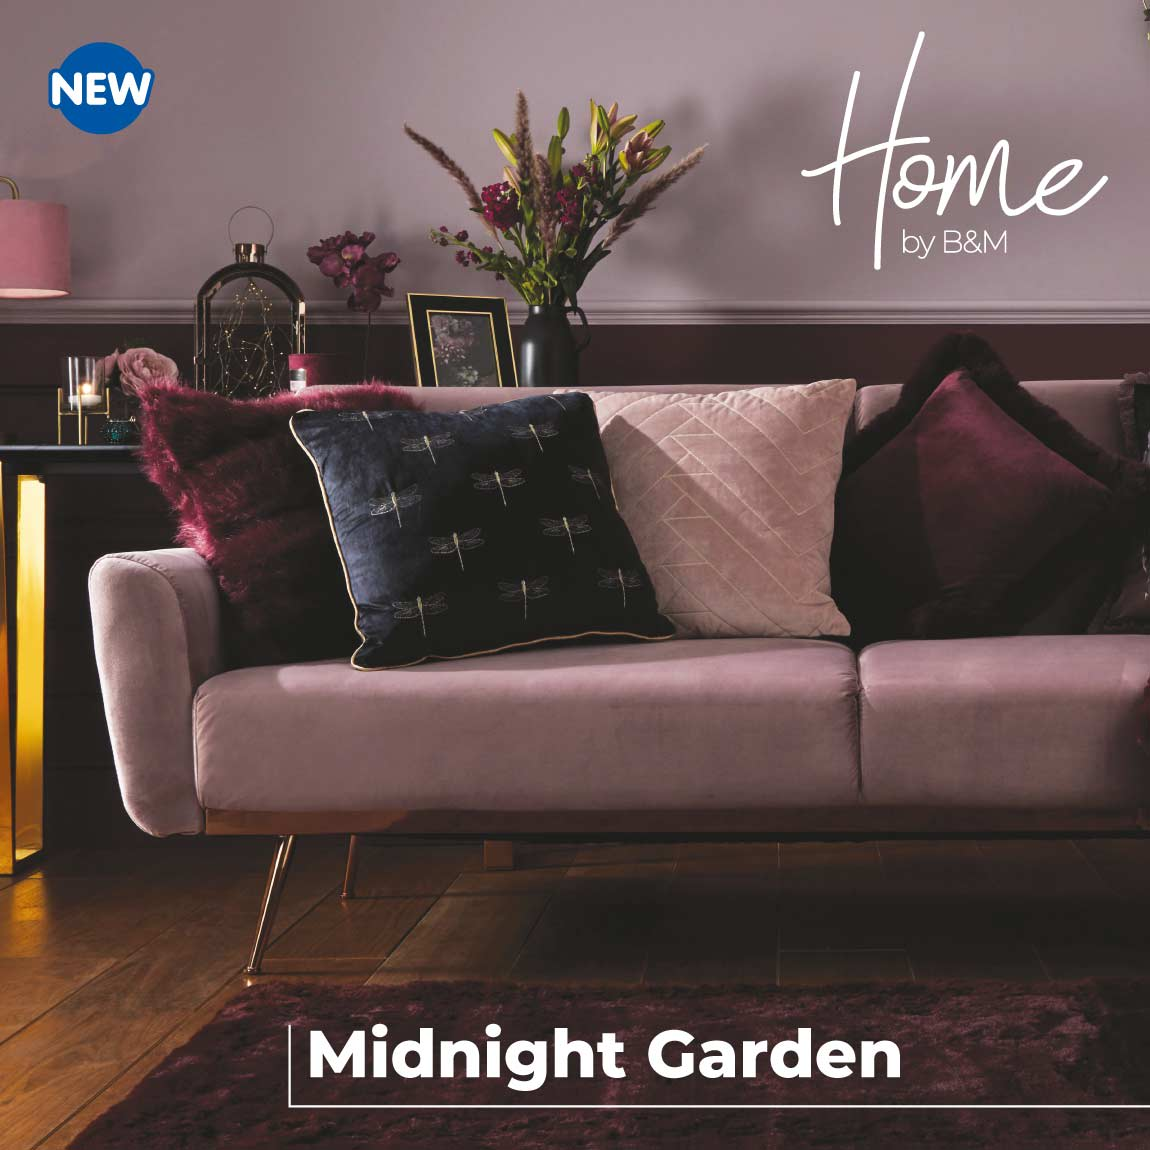 Midnight Garden now in-store at B&M.